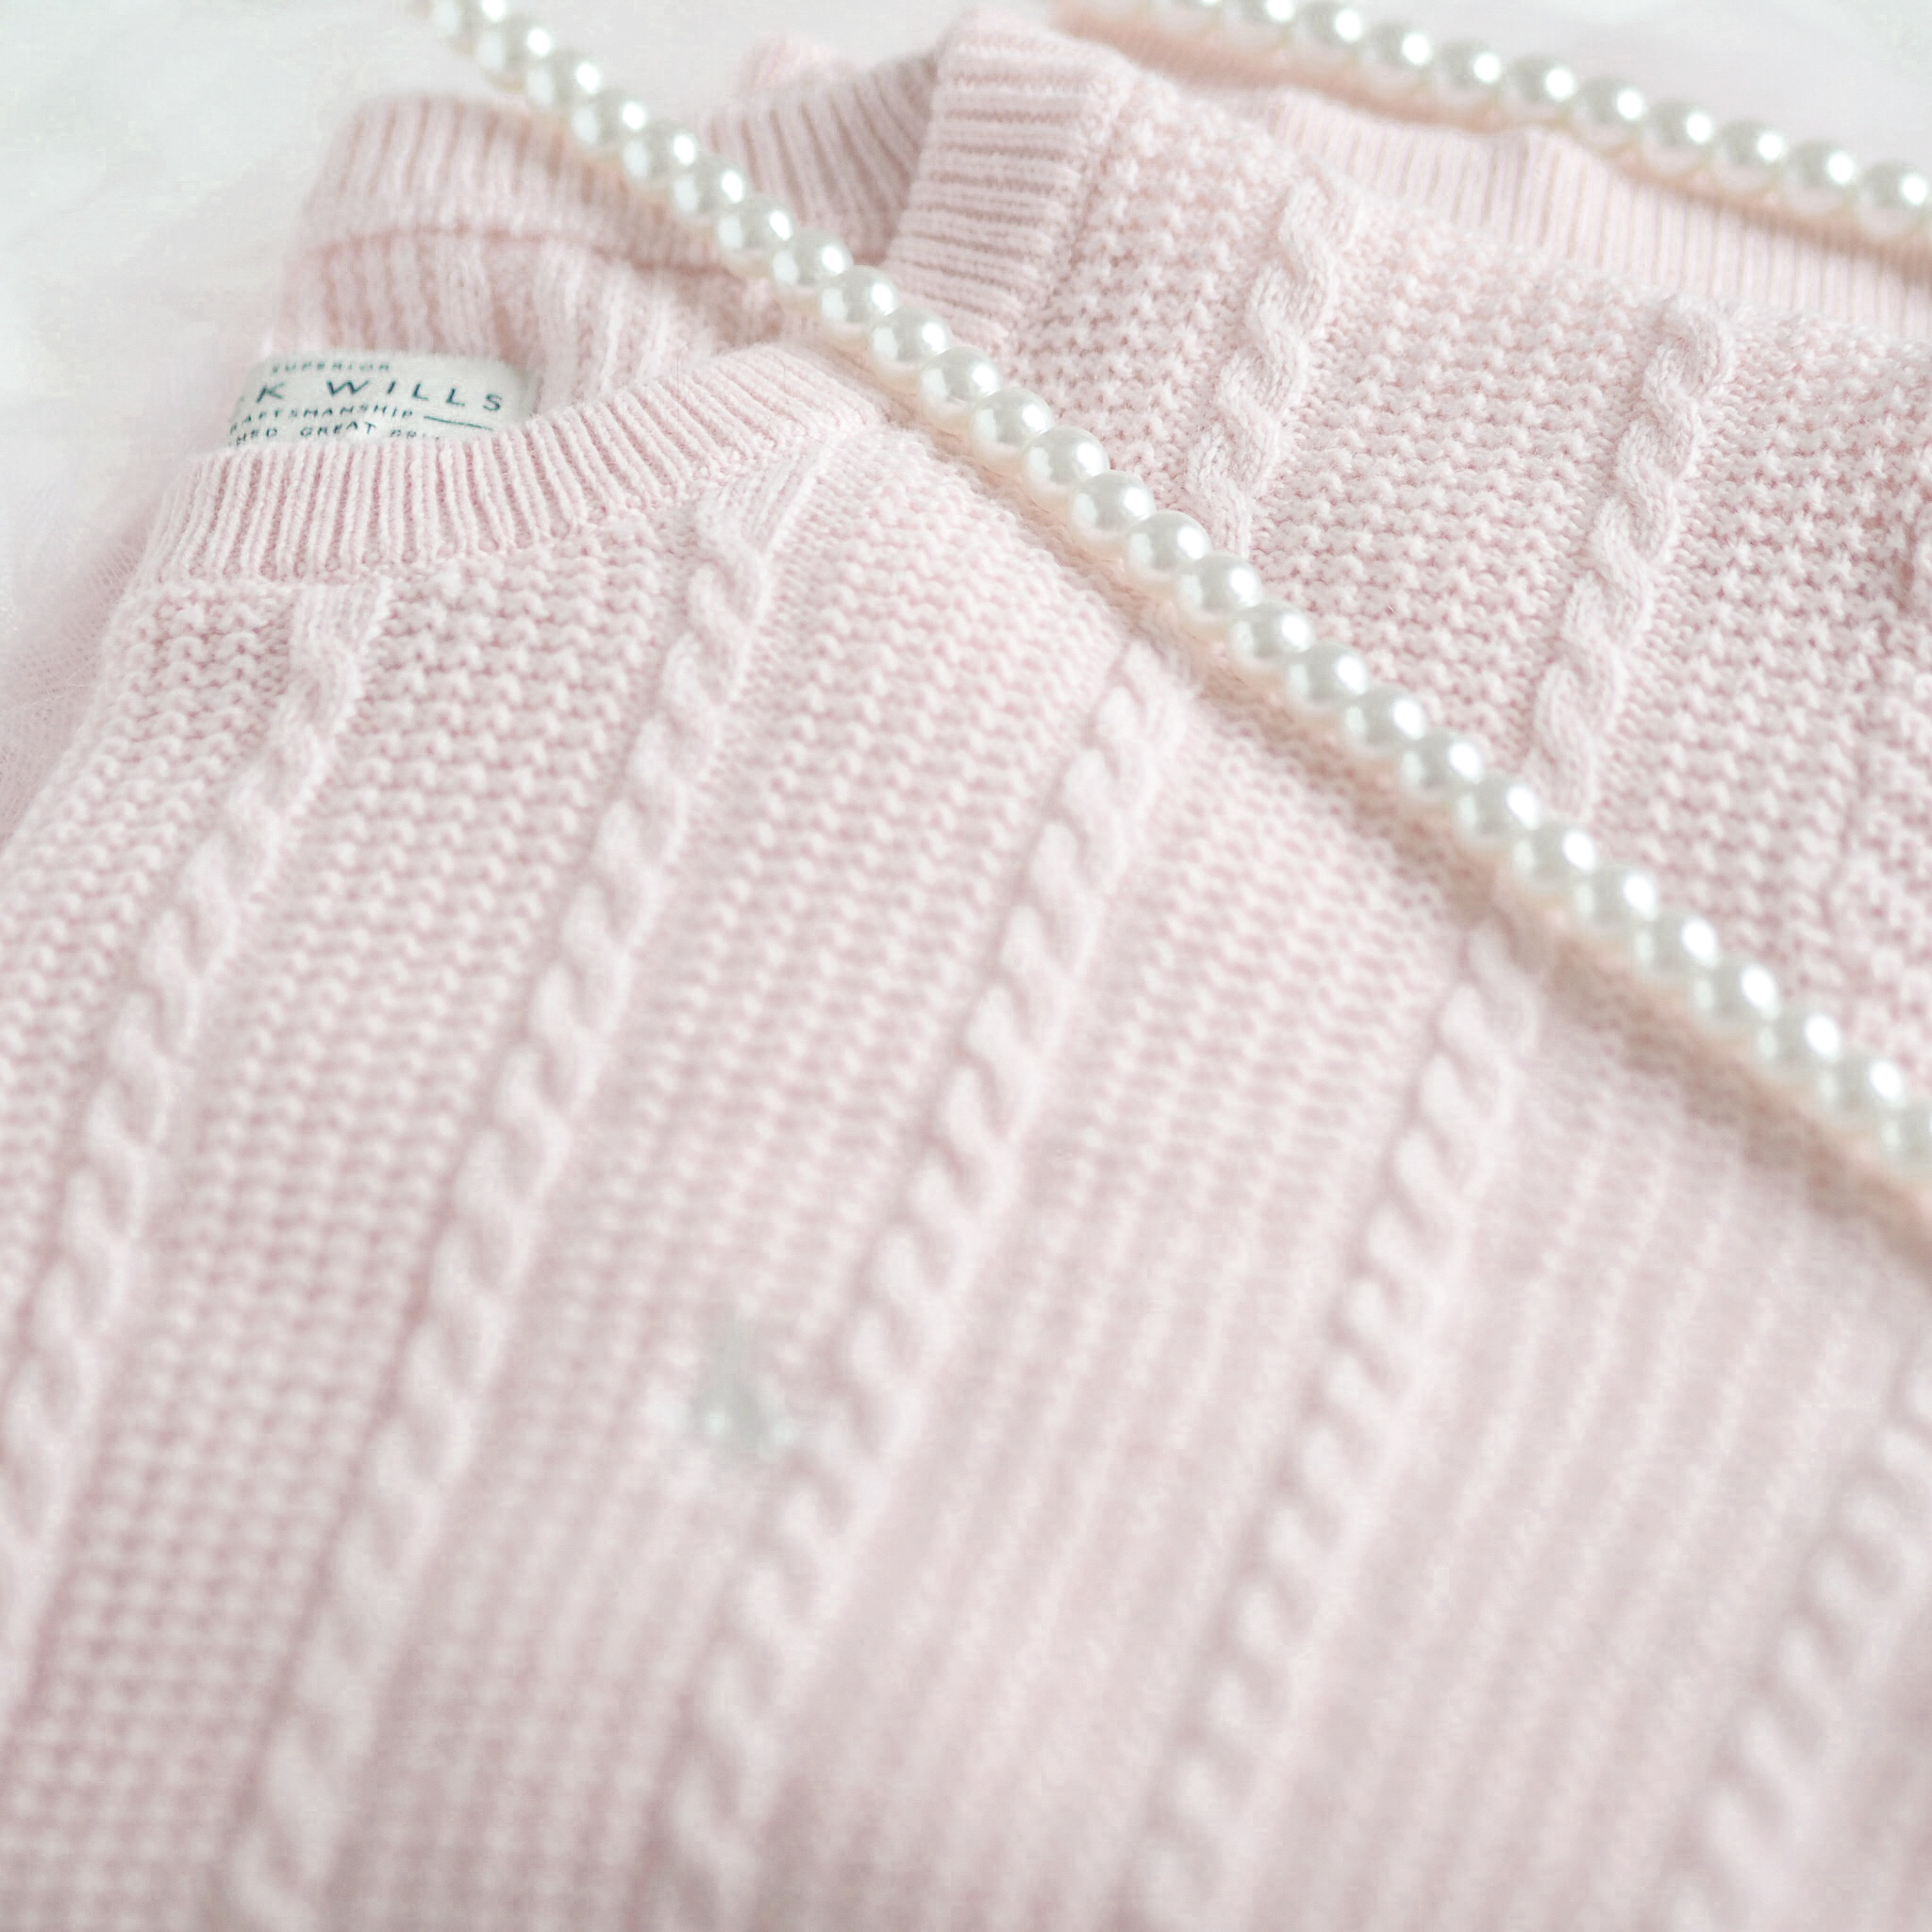 Pink Knitted Jumper, The Lovely Things I Received For Christmas | Love Catherine